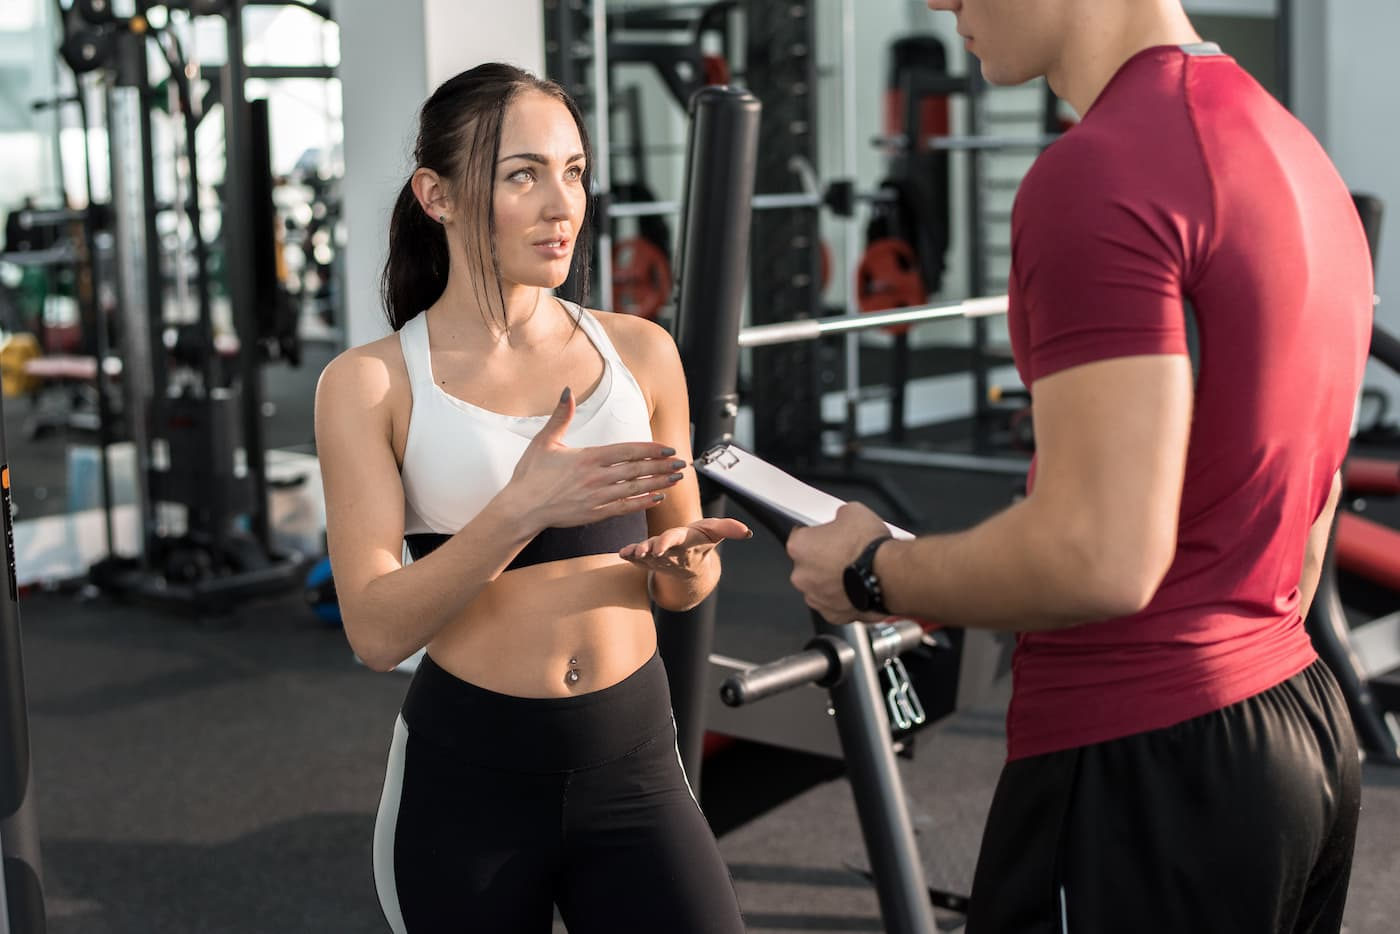 The Mental and Physical Exercise Essentials To Unlocking Your Potential